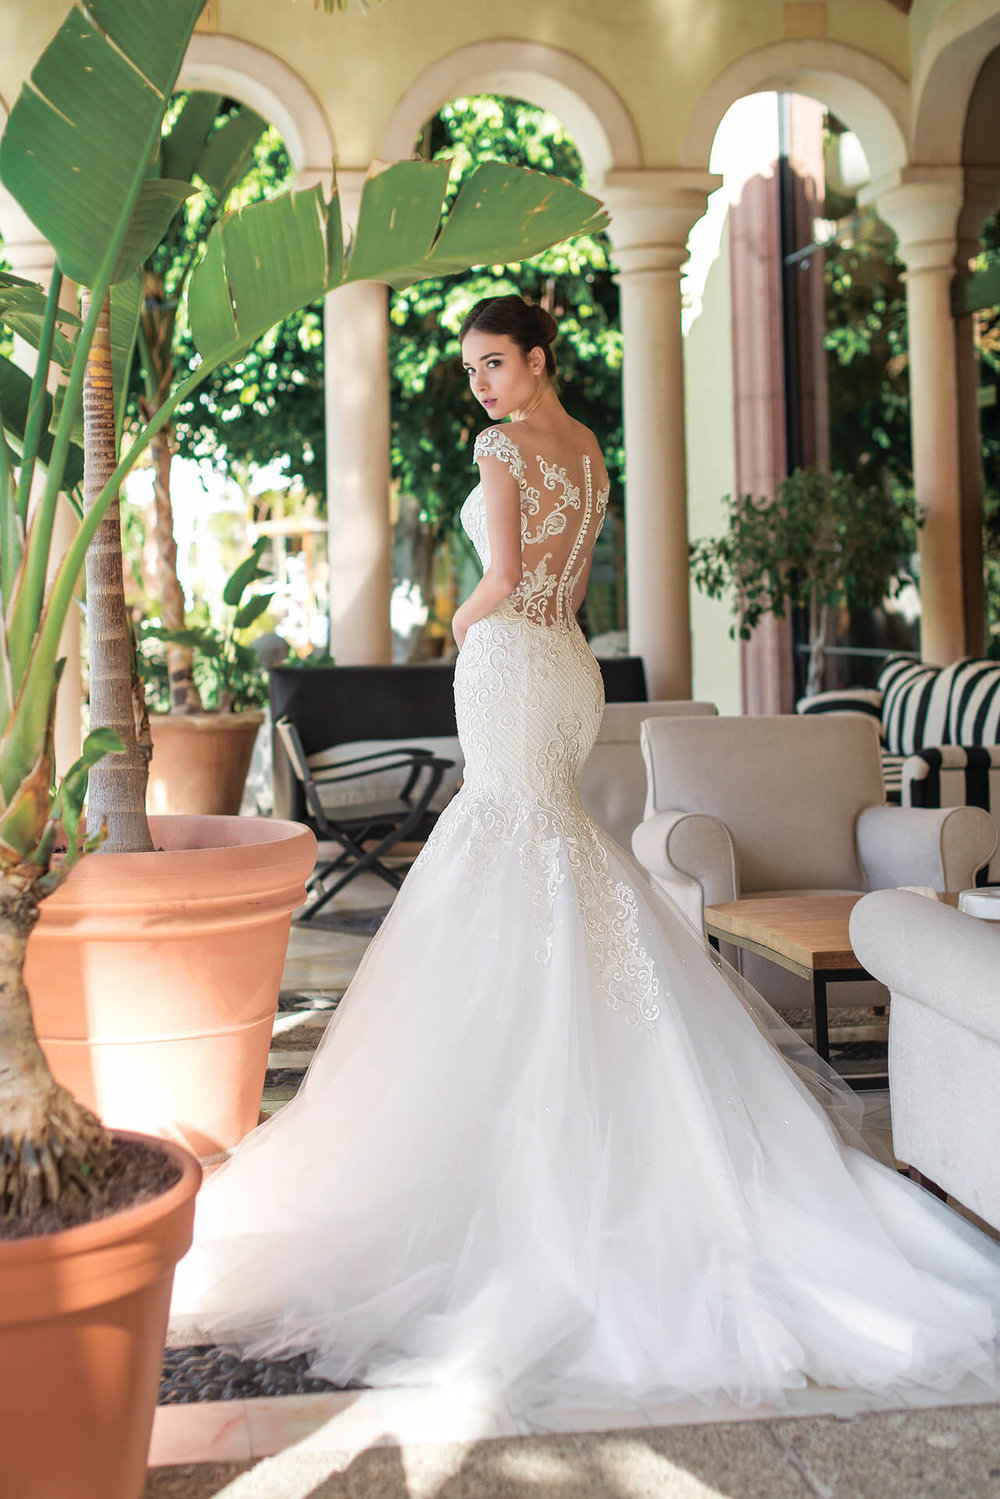 MELISANDRA wedding dress by OKSANA MUKHA